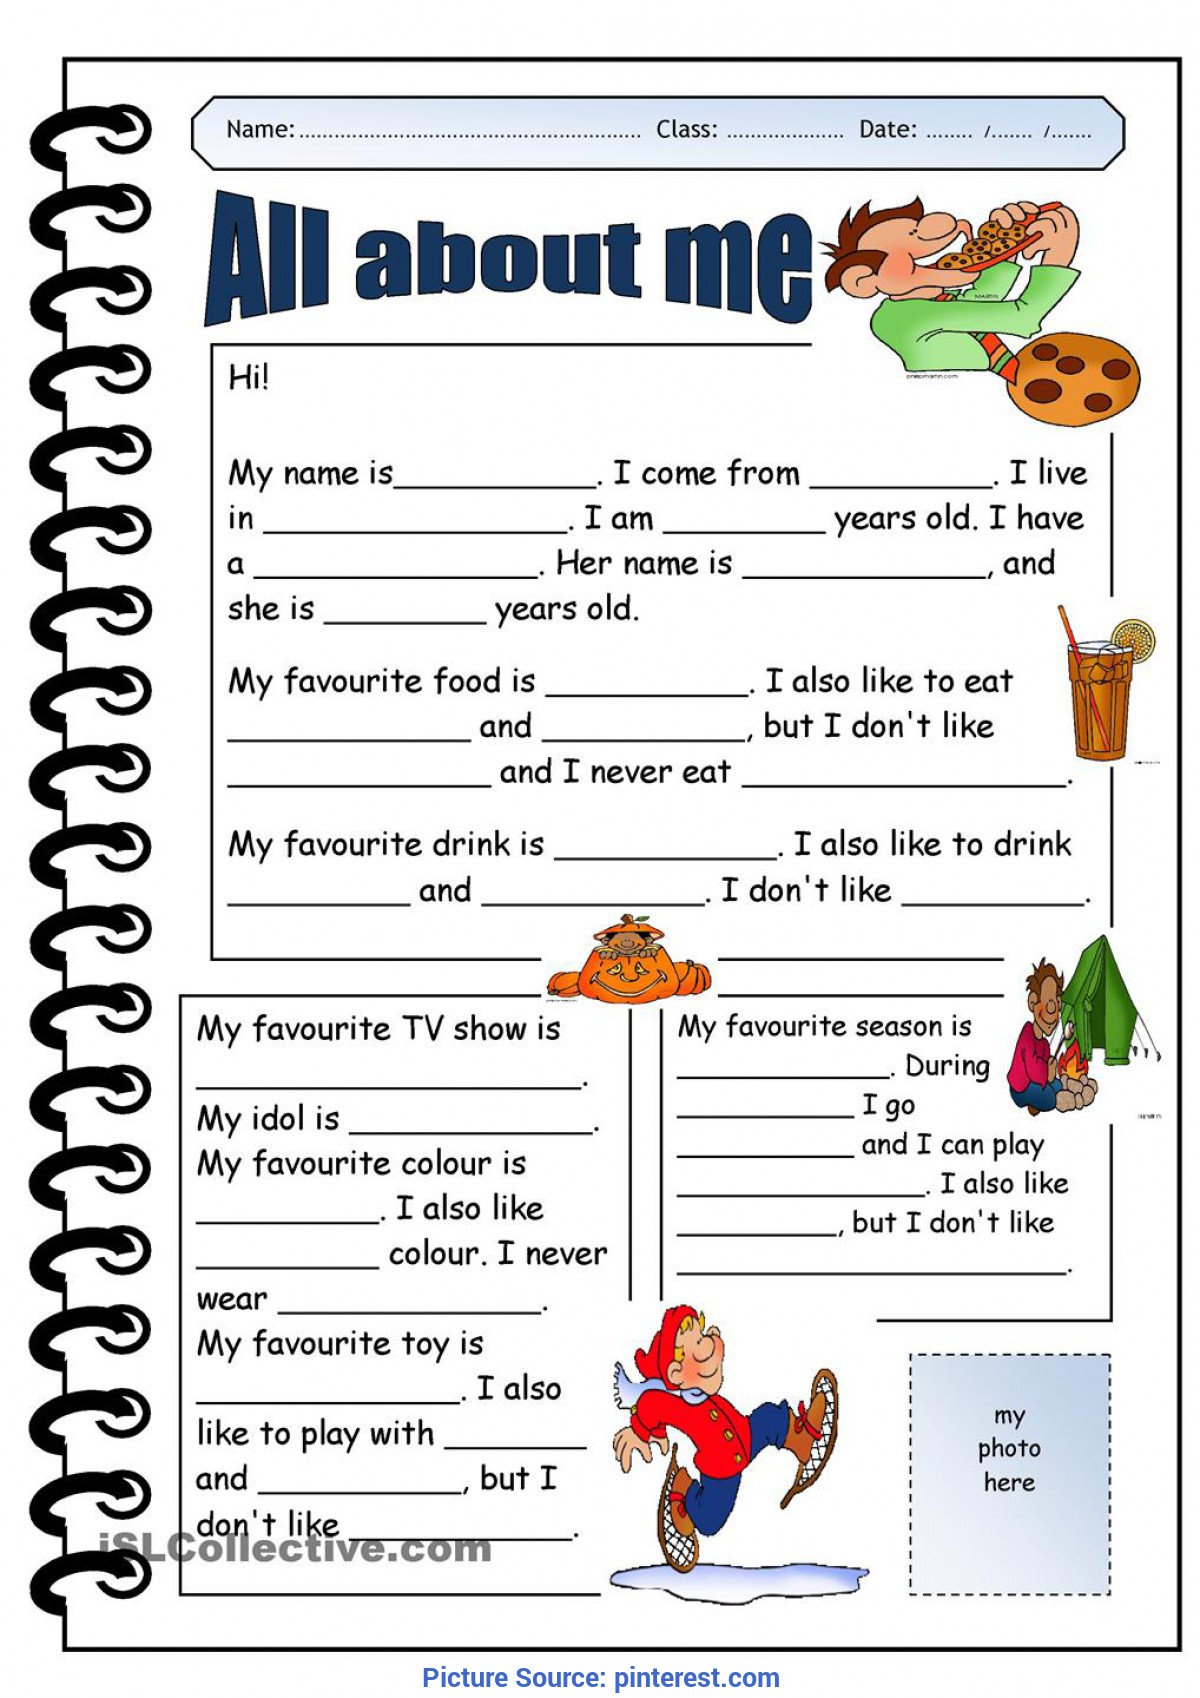 All About Me Worksheet For Middle School Students